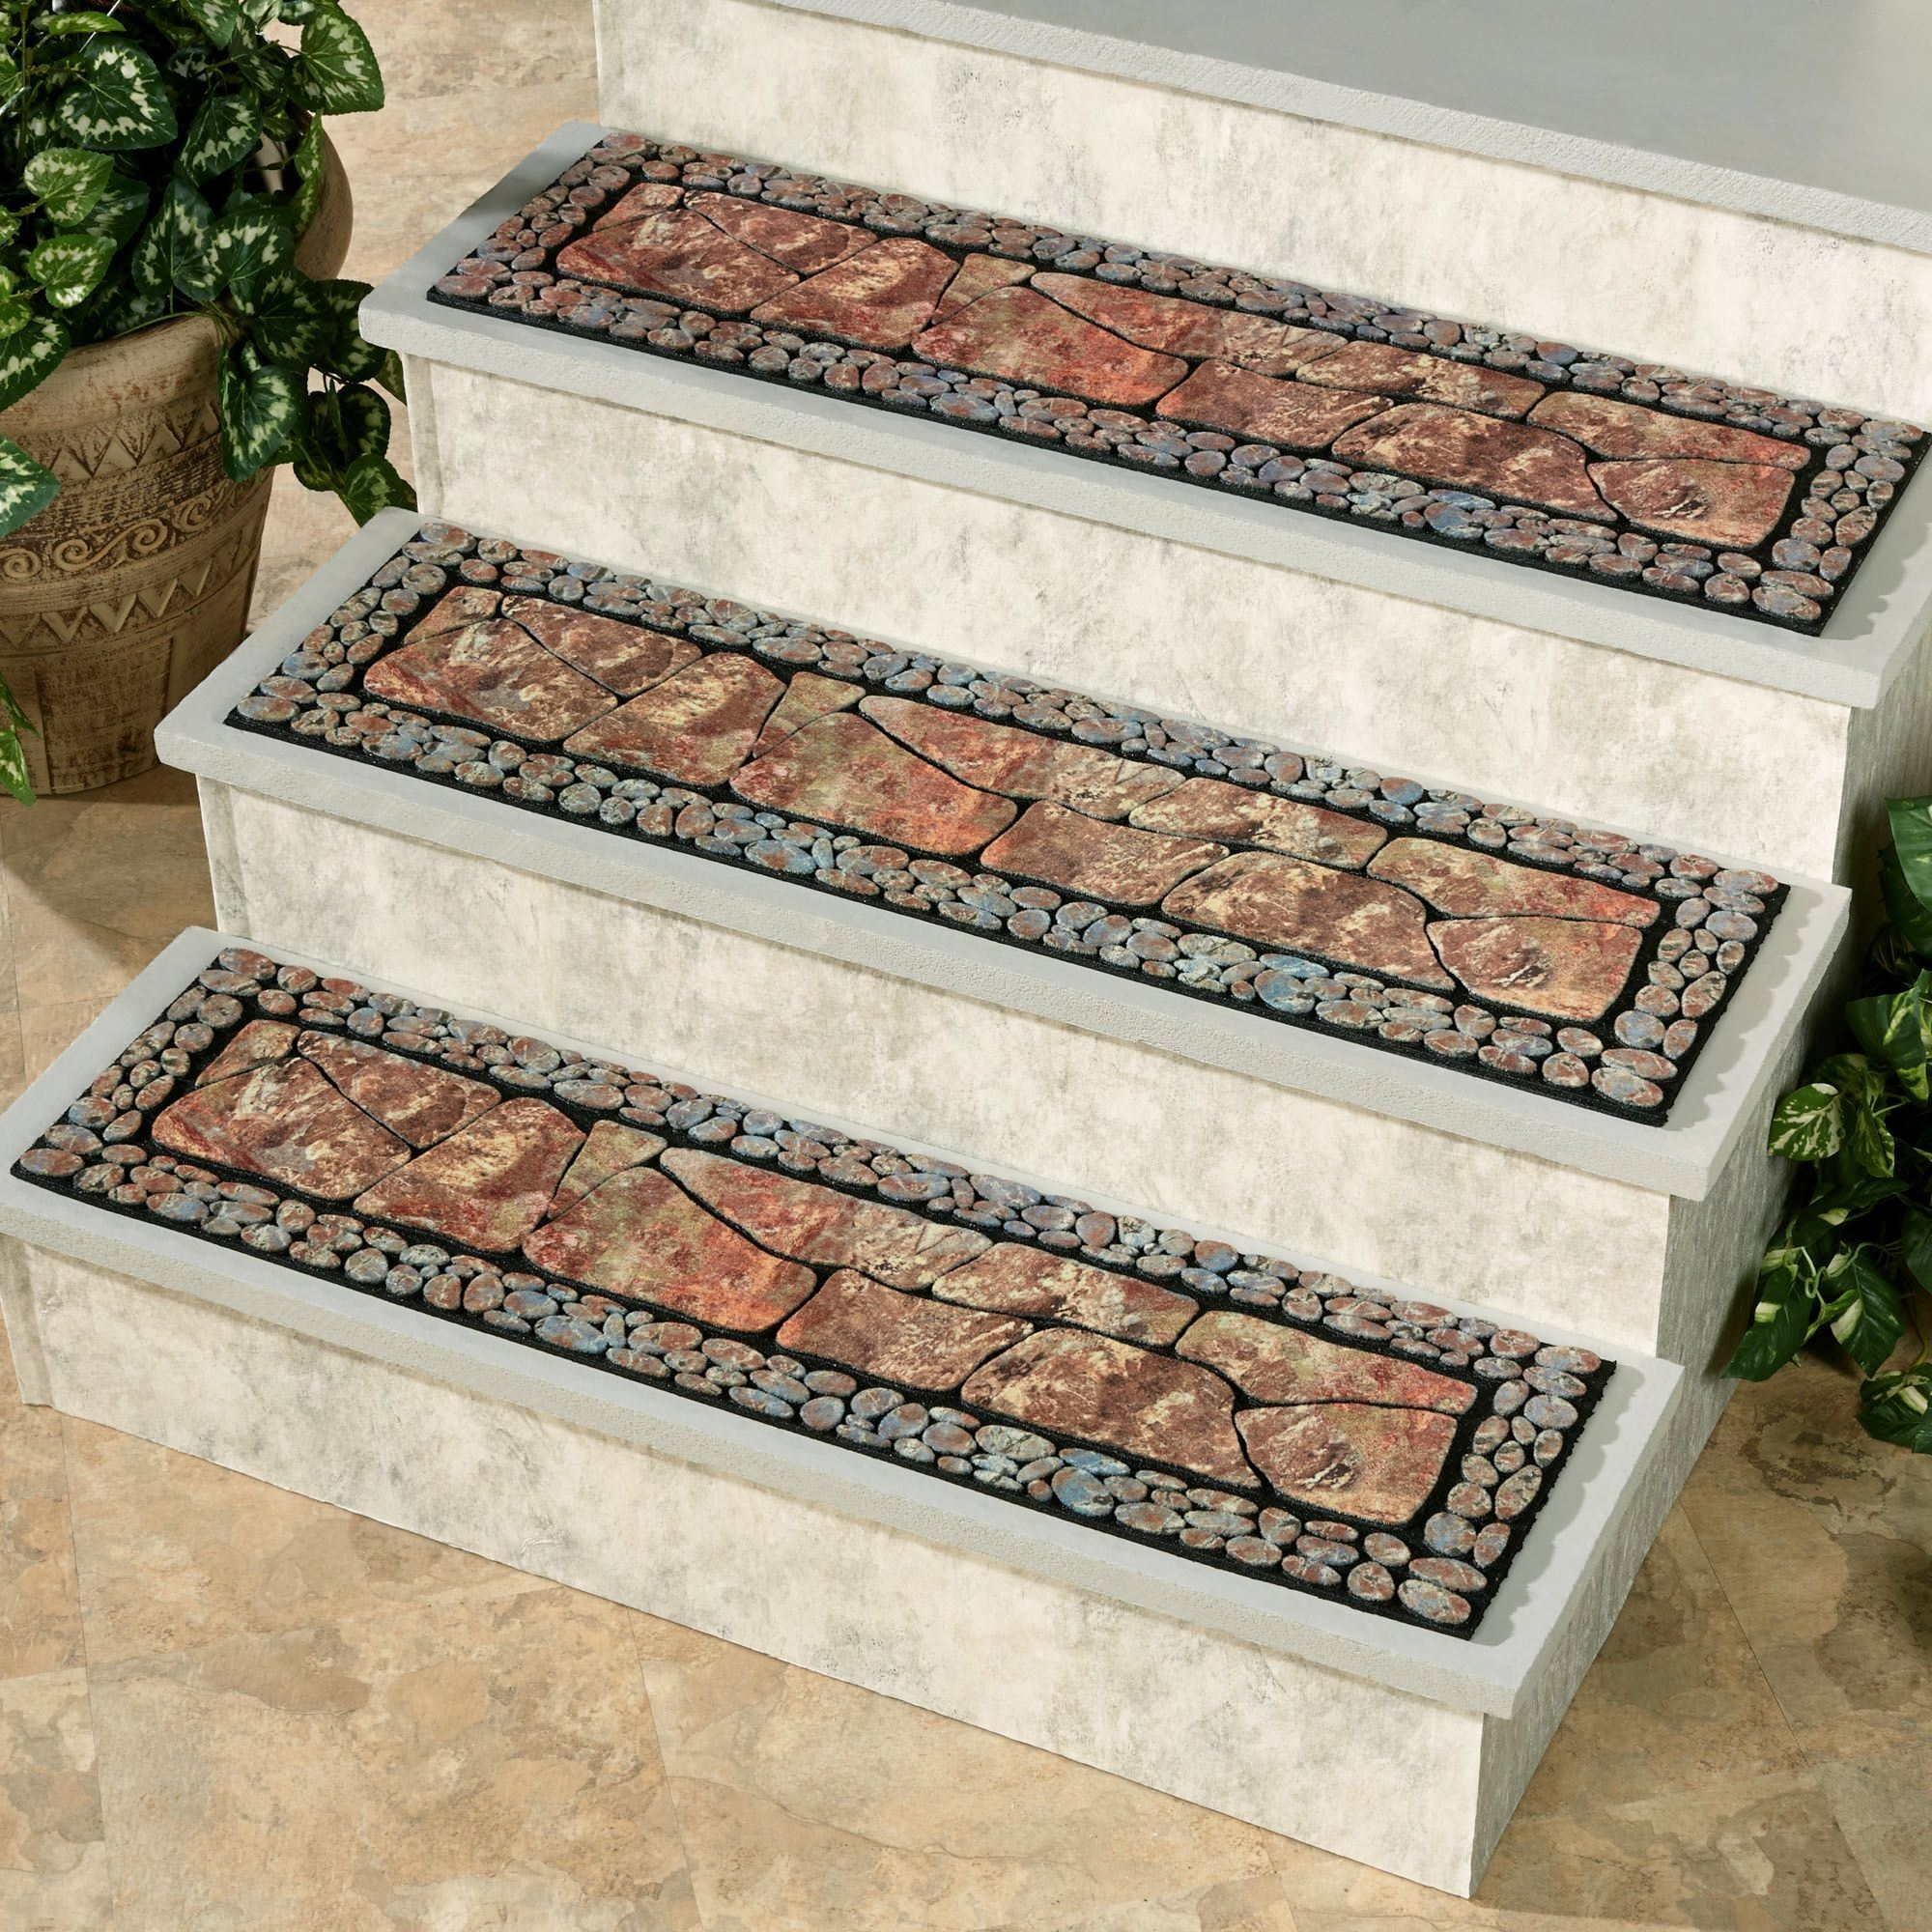 Outdoor Spiral Stair Mats Stair Case Carpet Stone Stair Tread Buy | Spiral Staircase Carpet Treads | Replacement | Carpeting | Semi Circle | Interior | Double Winder Staircase